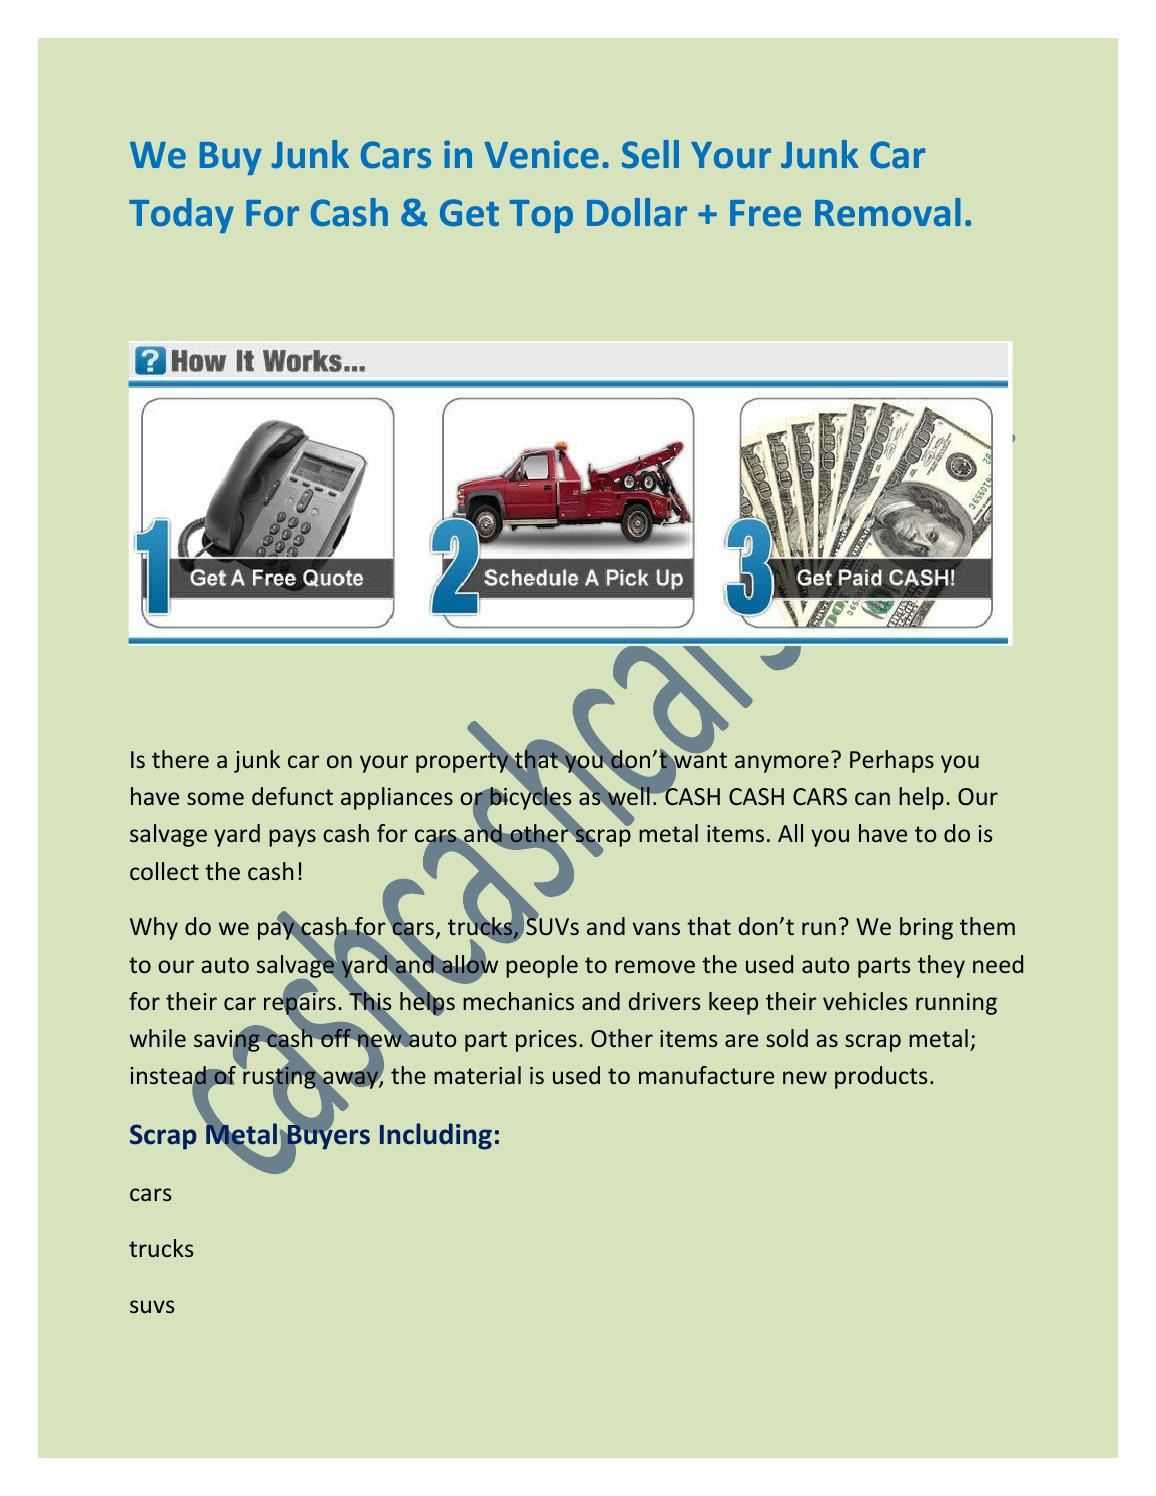 Cash For Junk Cars in Venice by Steve Roser - issuu